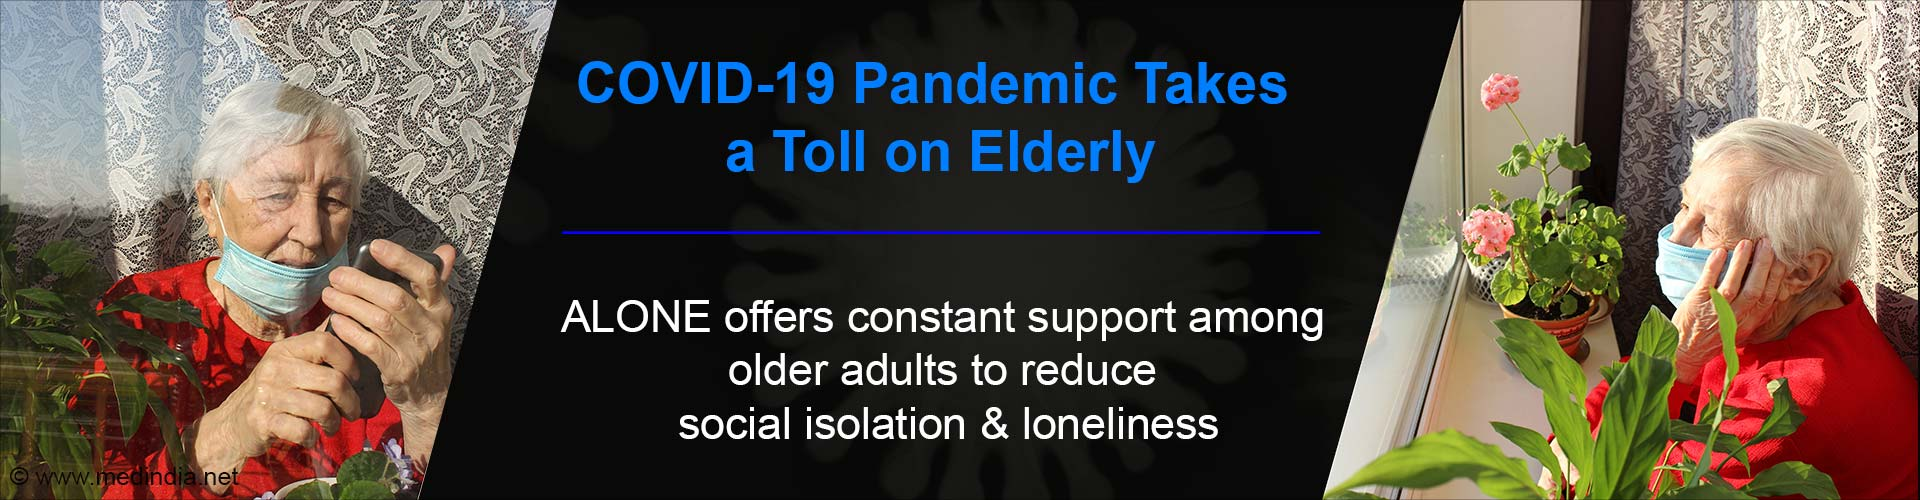 Impact of COVID-19 on the Mental and Physical Health of Older Adults